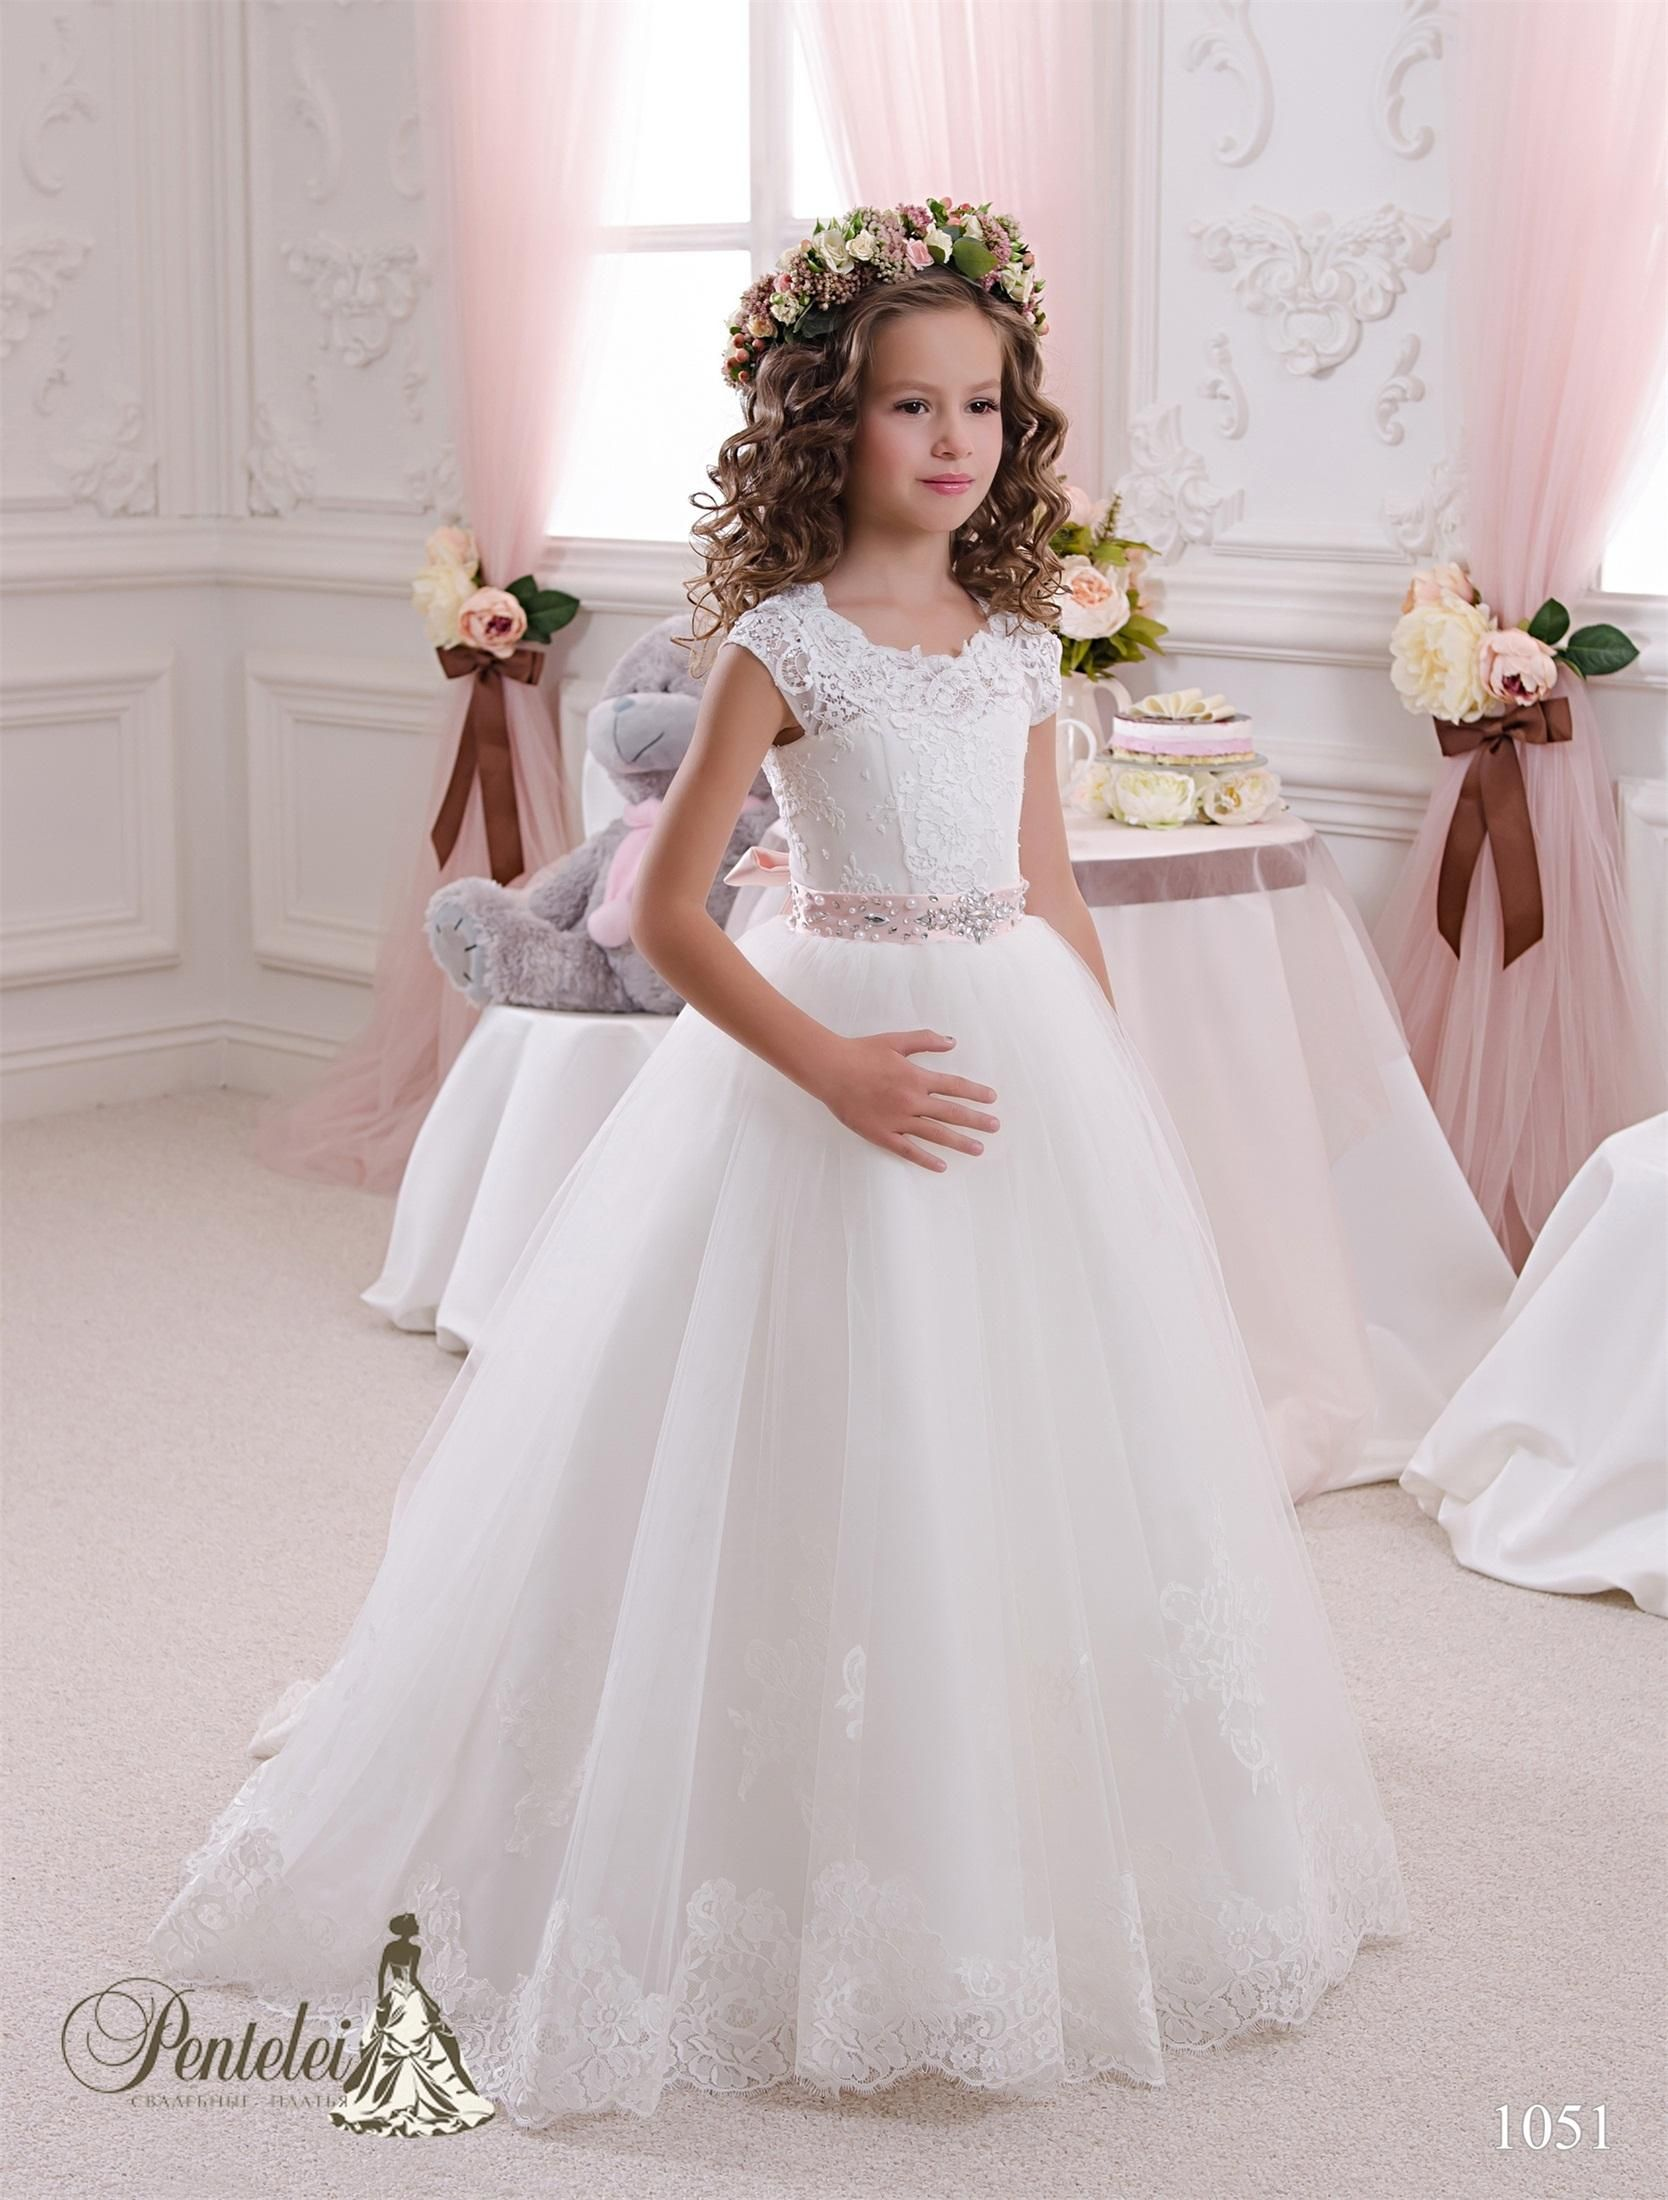 2016 kids wedding dresses with cap sleeves jewel neck for Wedding dresses for young girls